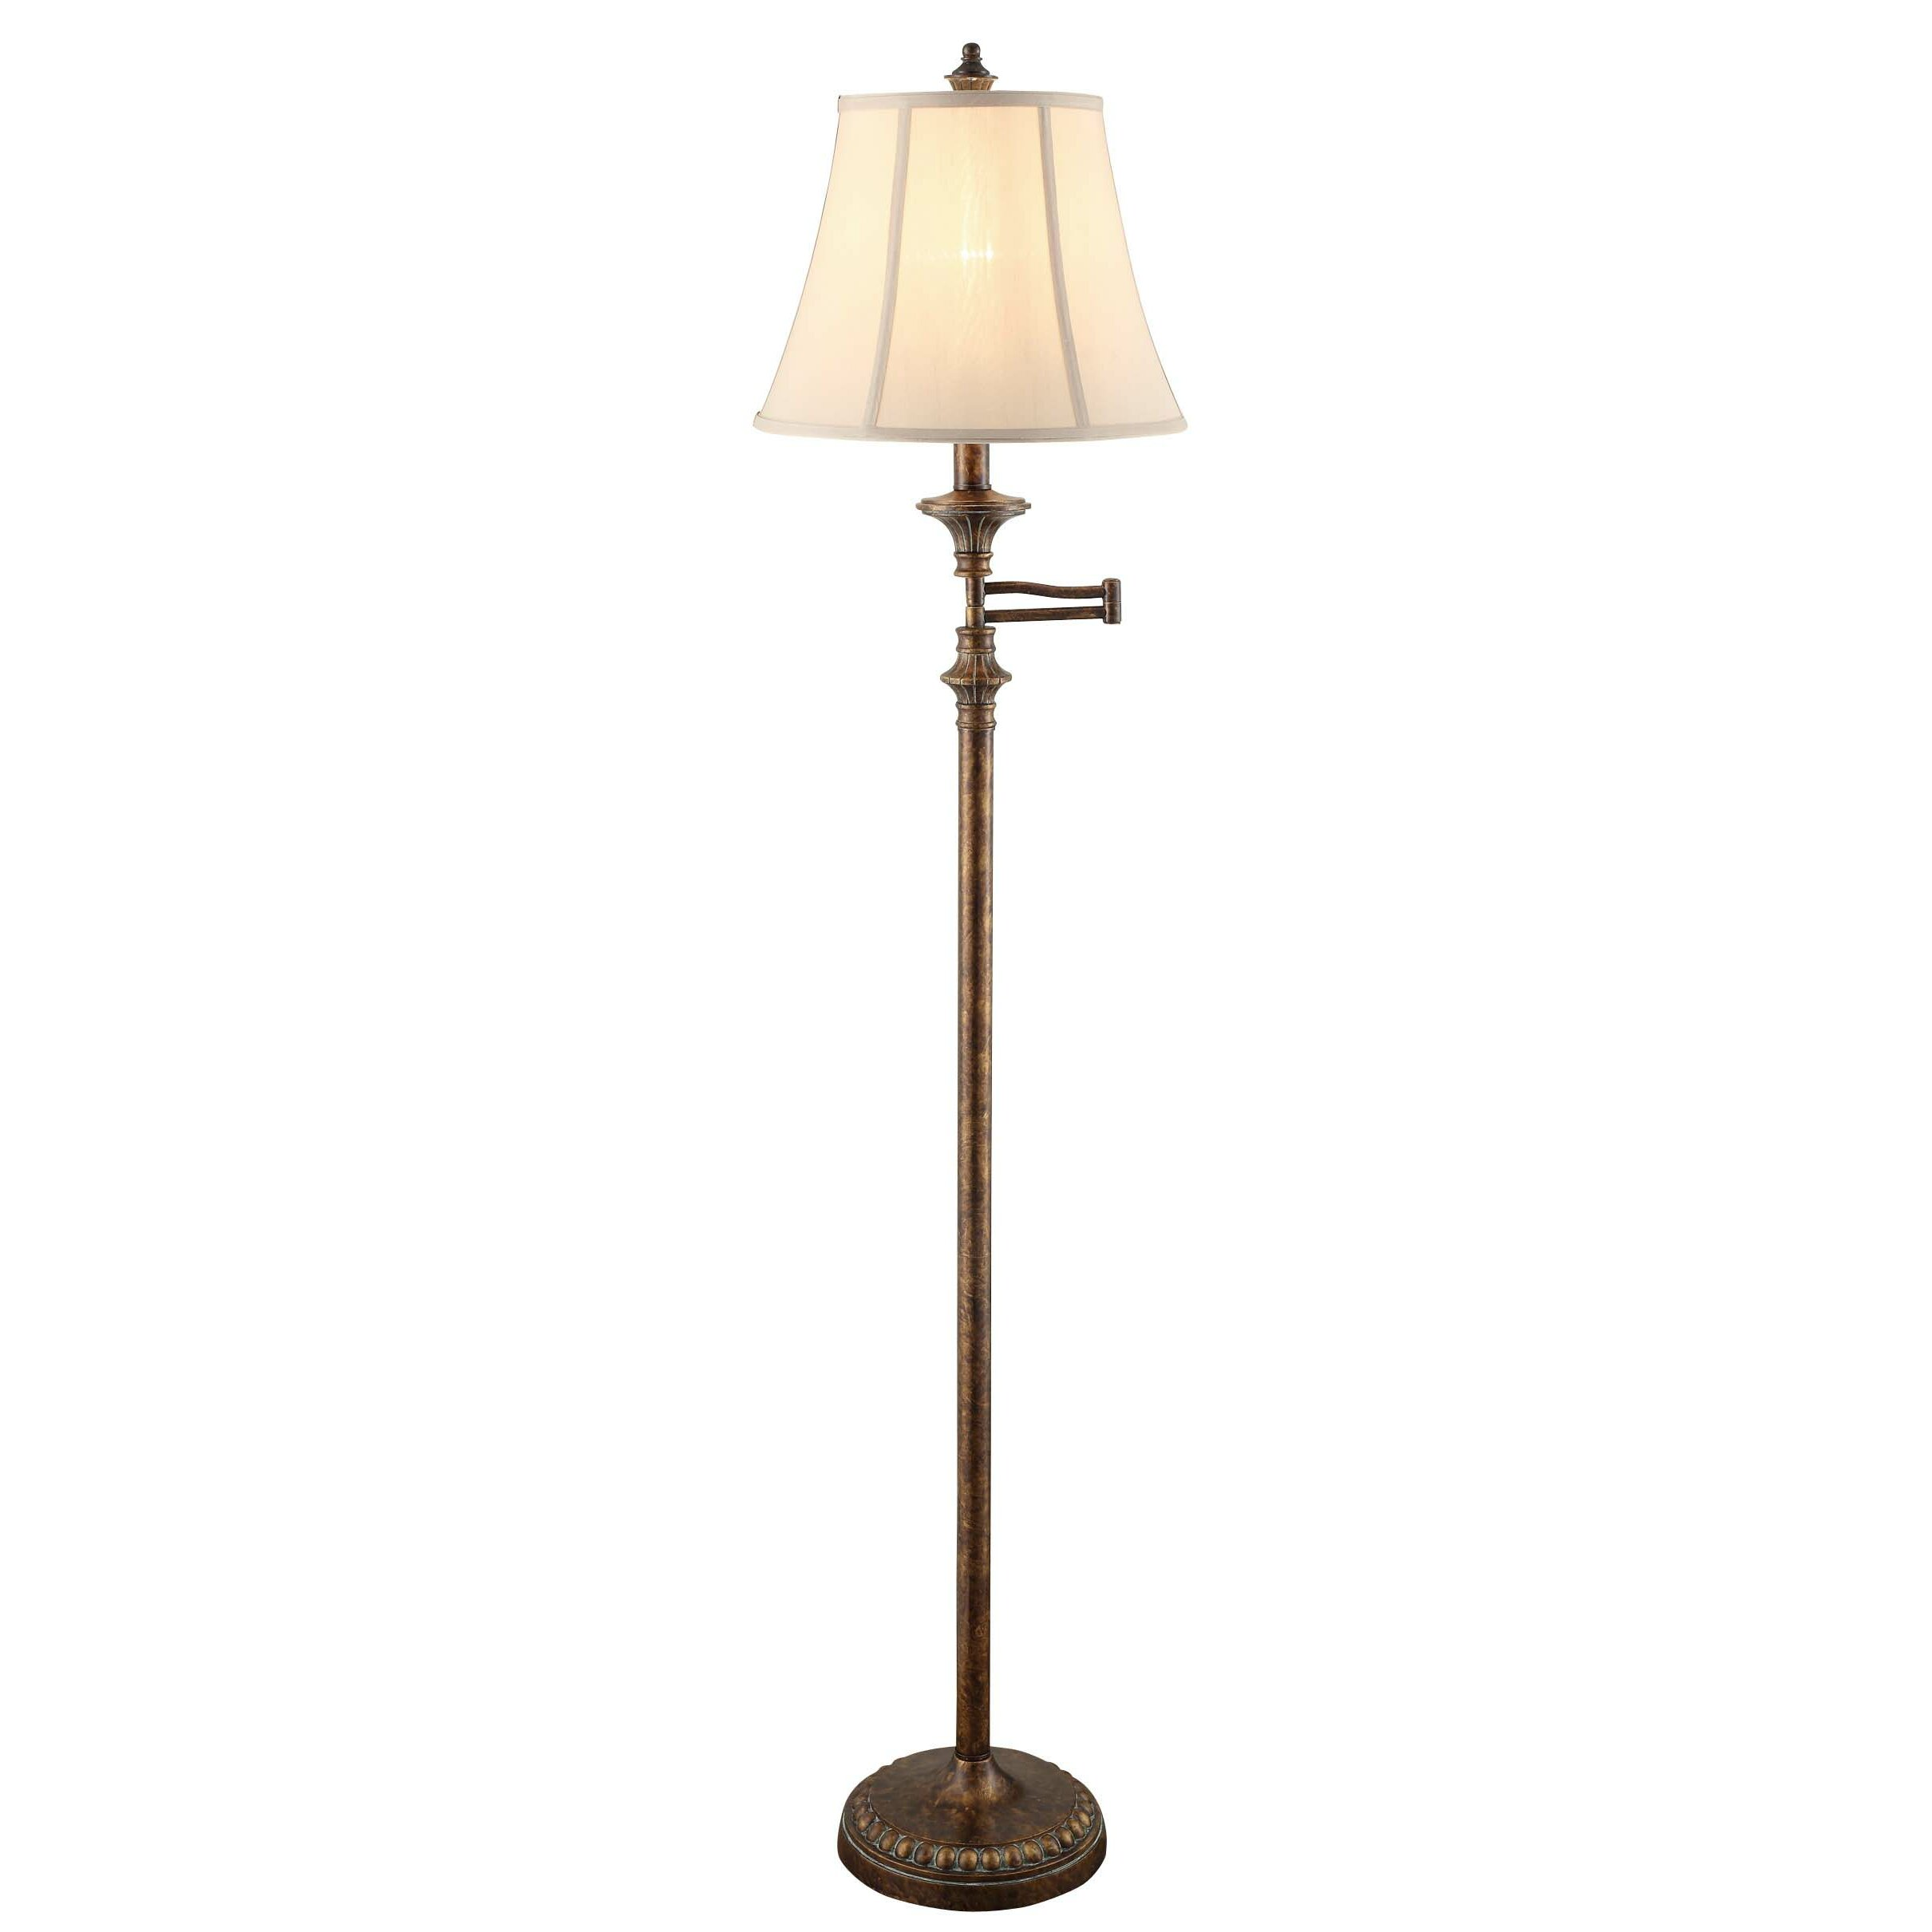 "Crestview Barton Swing Arm 61.5"" Task Floor Lamp & Reviews"